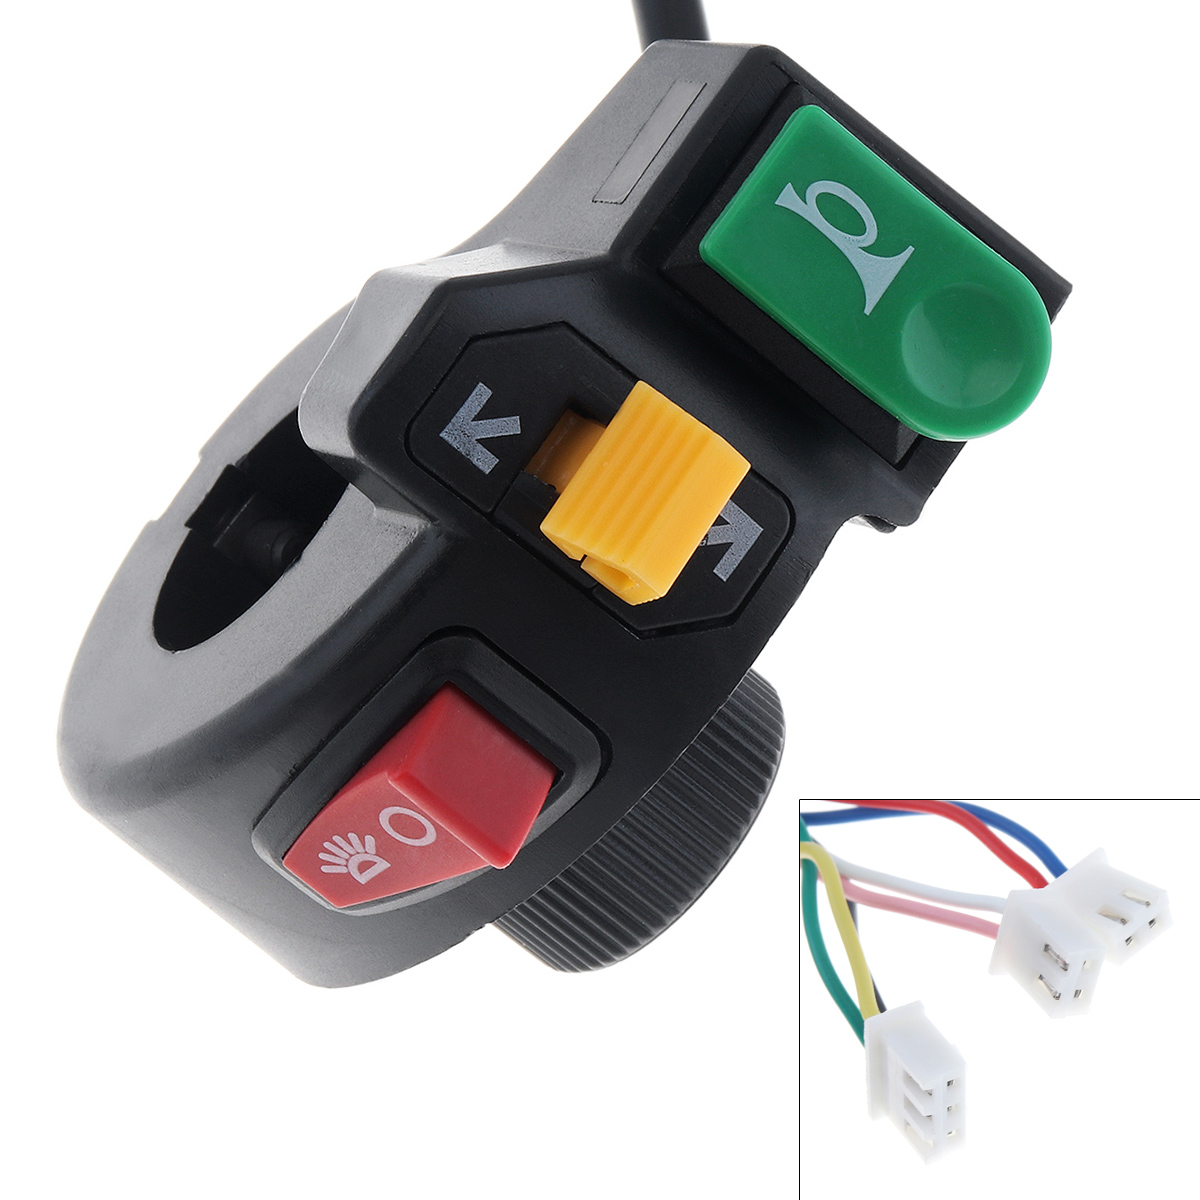 Details about  /Electric Scooter E-Bike Light /& Horn Switch Handlebars ATVs Dirt 2 In1// 3 In1